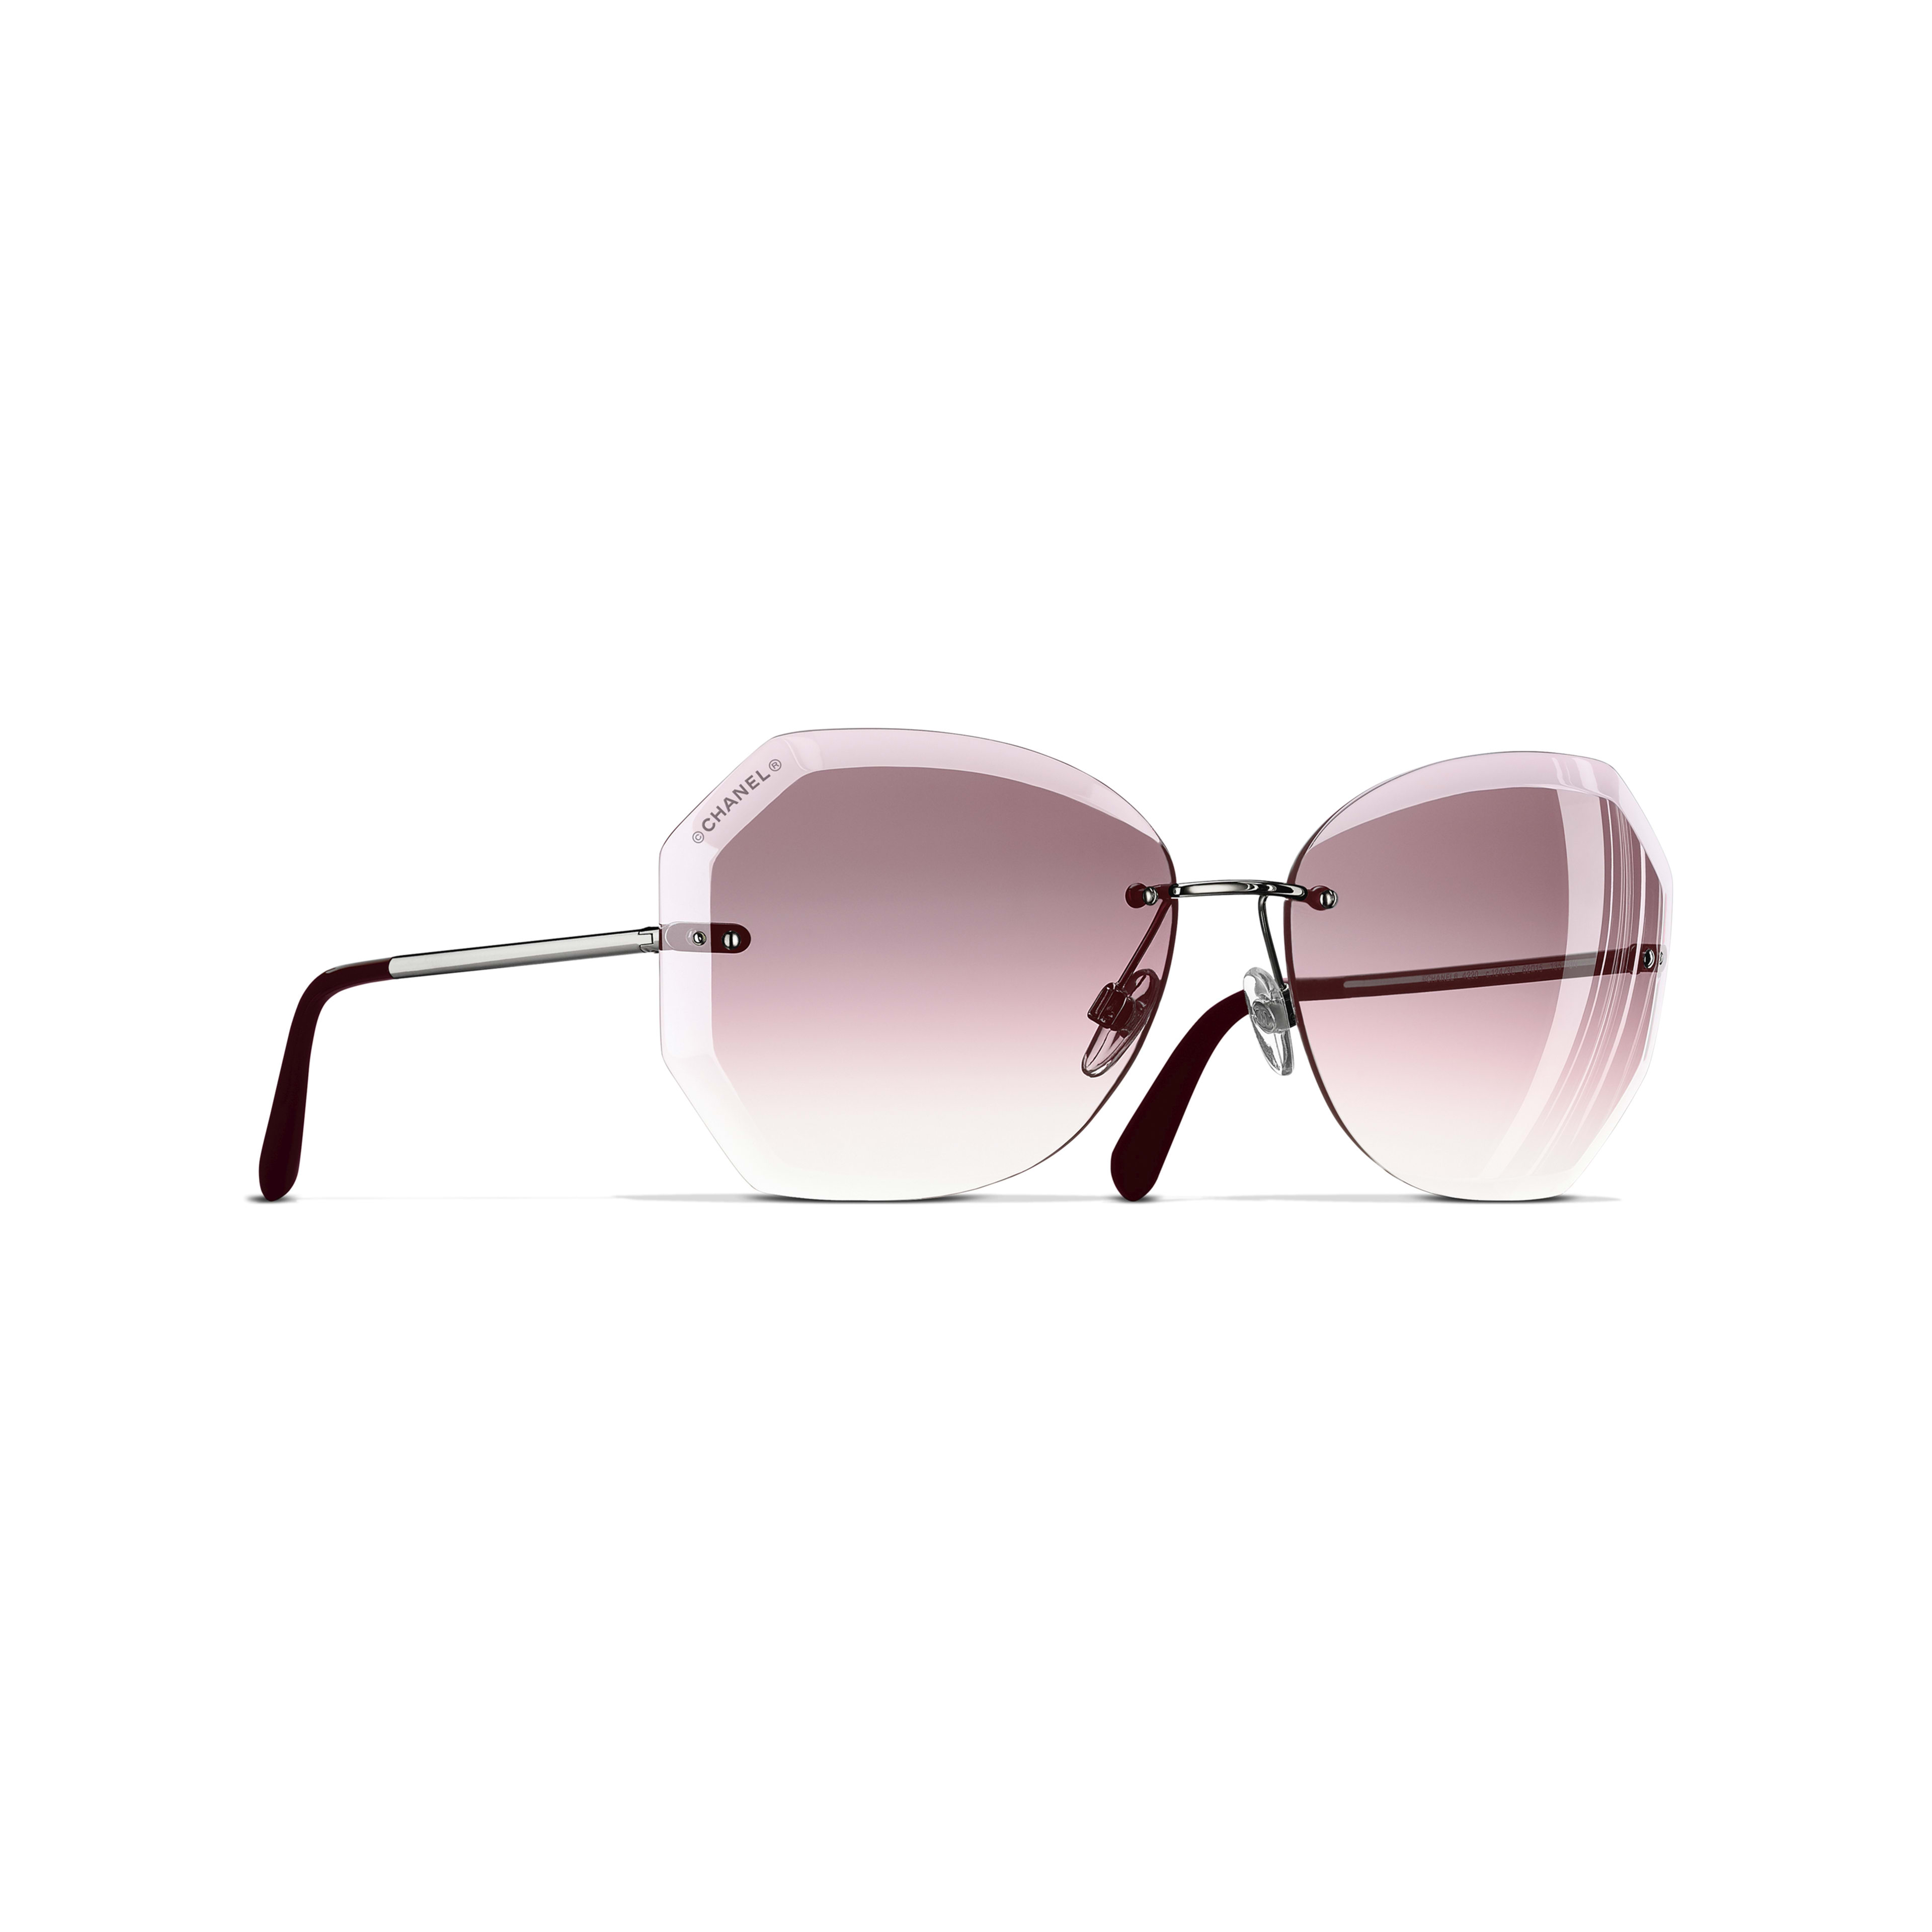 Round Sunglasses - Silver & Pink - Metal - Default view - see full sized version